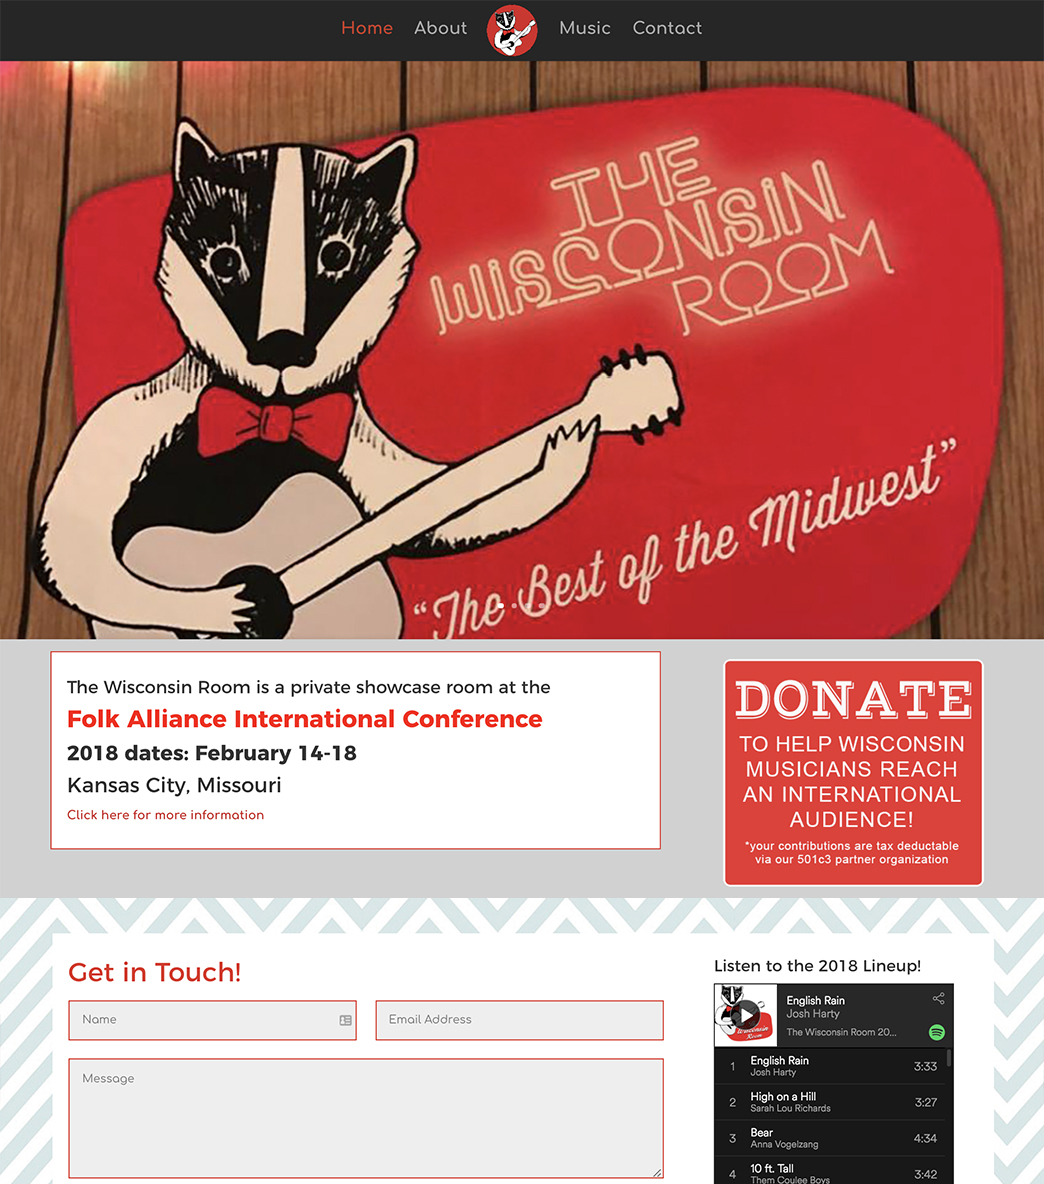 WisconsinRoom.org